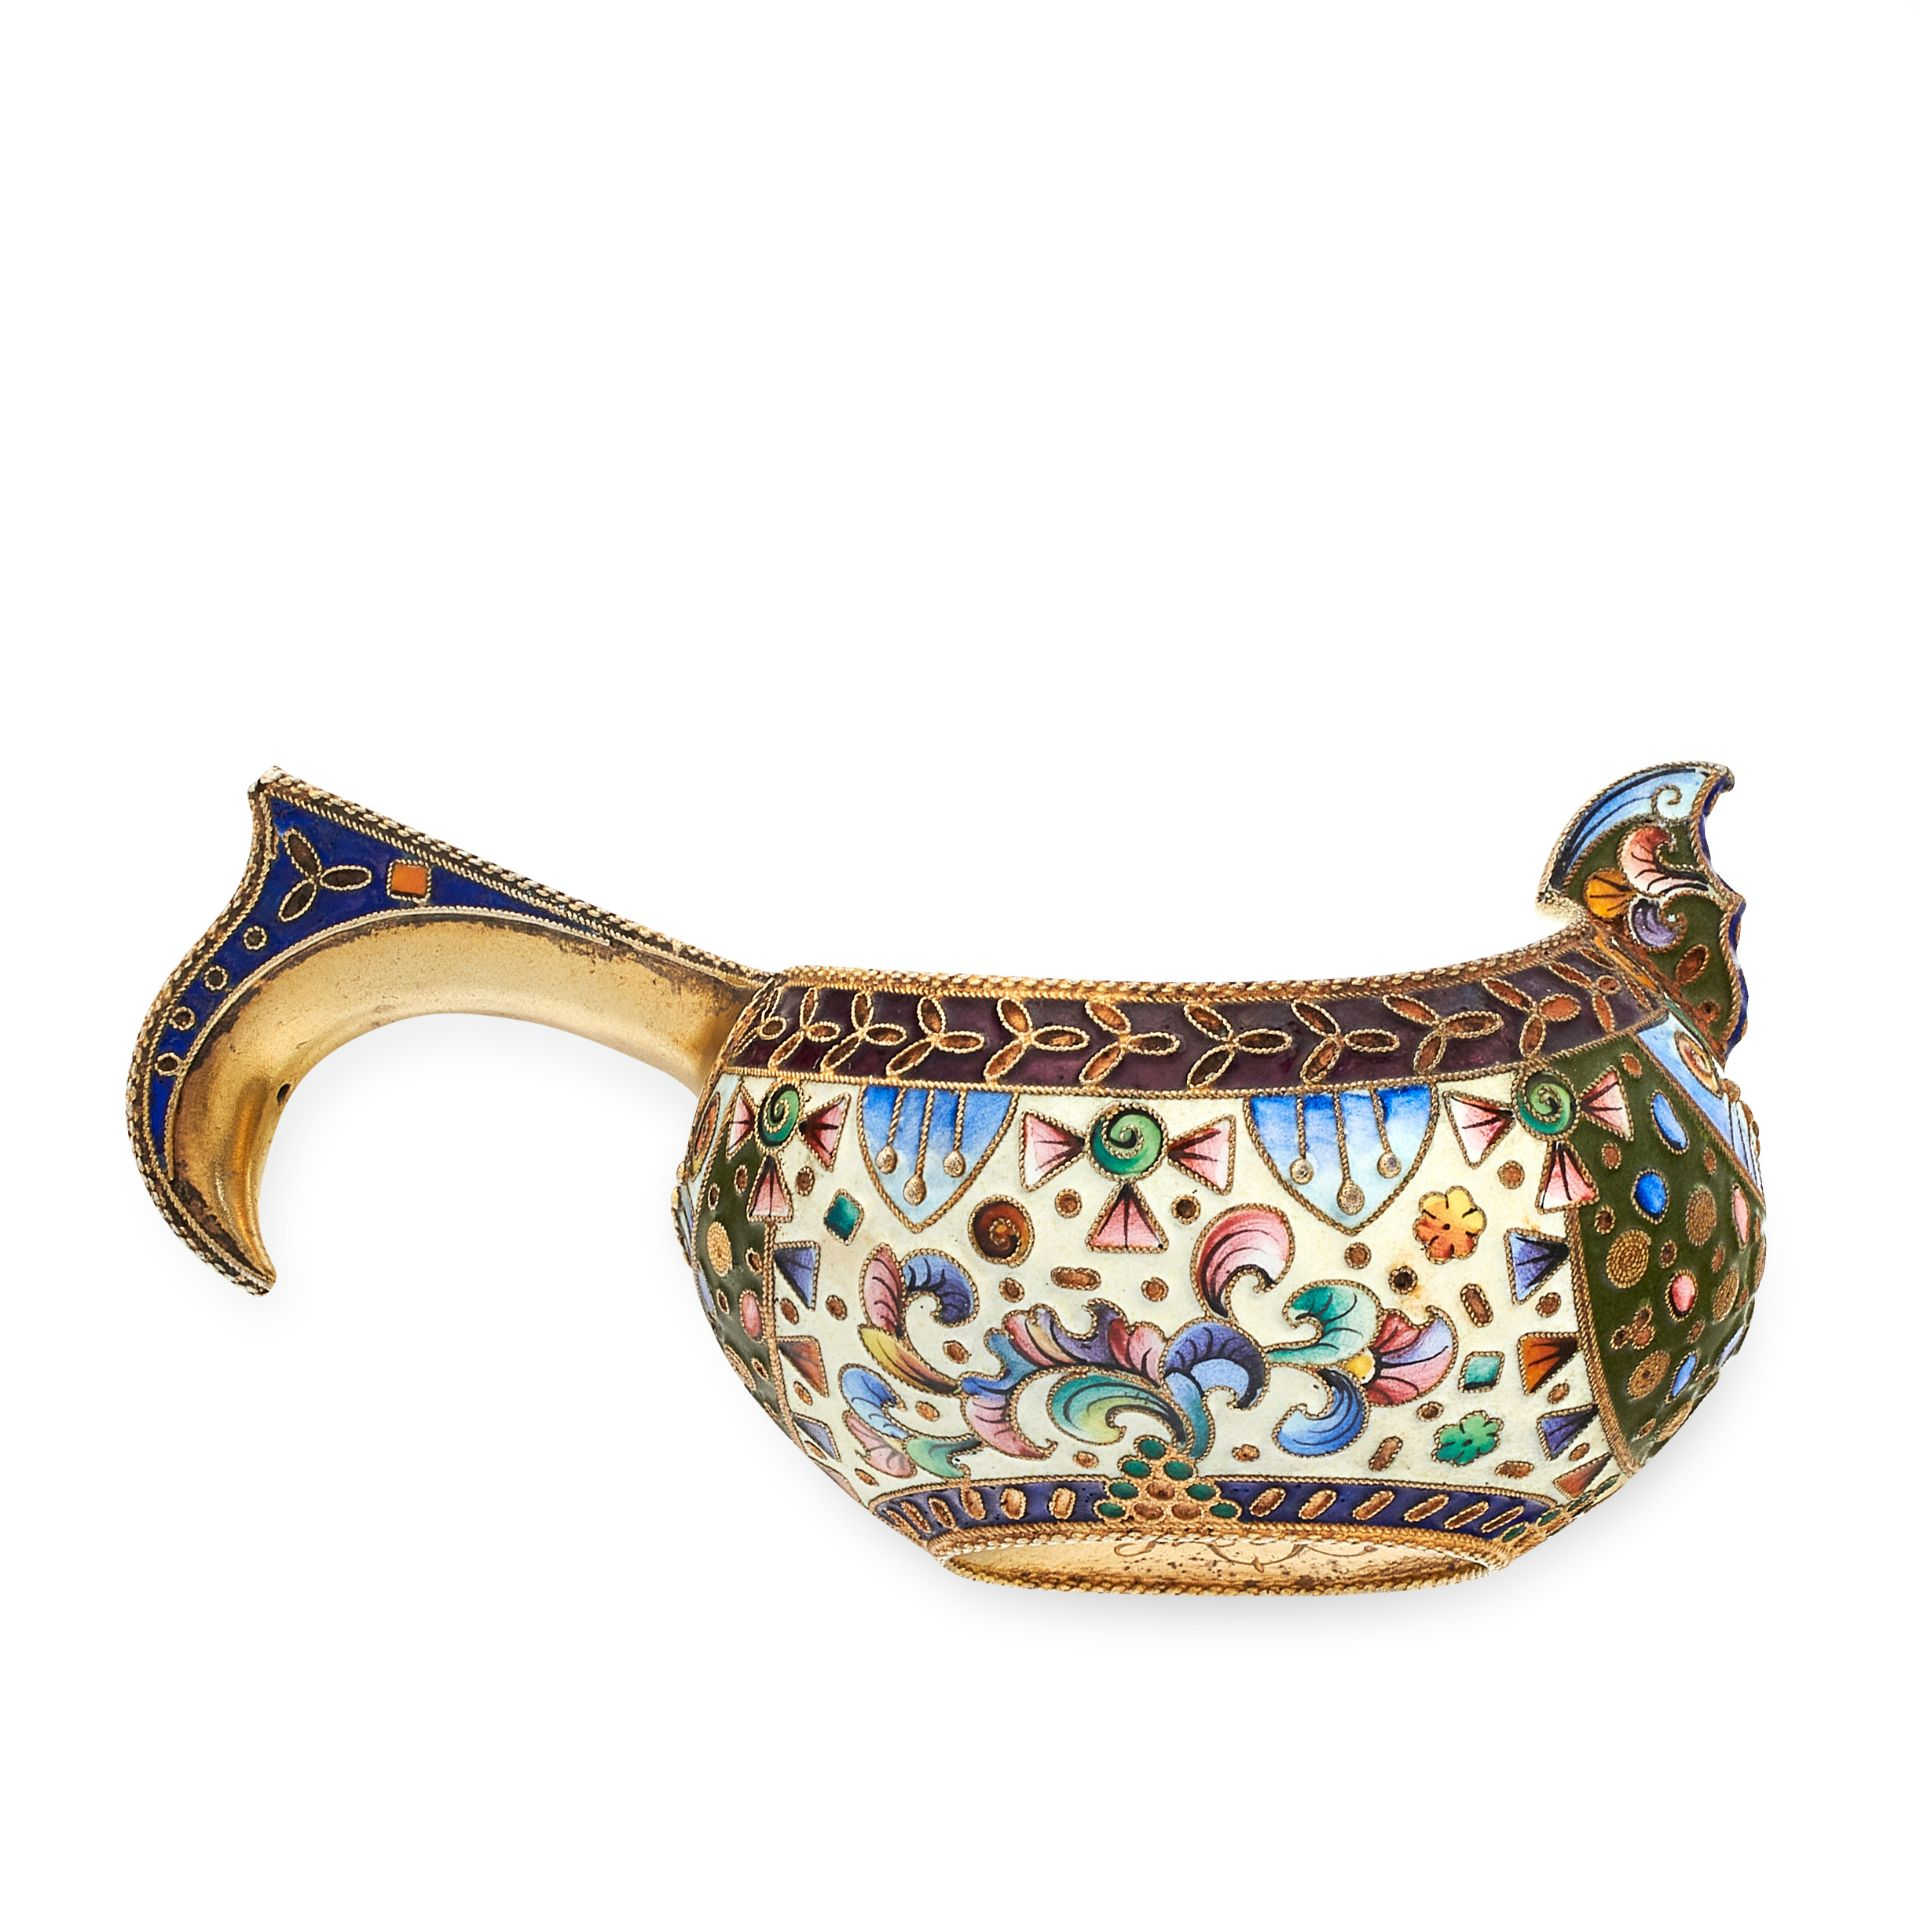 AN ANTIQUE IMPERIAL RUSSIAN ENAMEL KOVSH, MOSCOW 1908-17 in 84 zolotnik silver, the body decorated